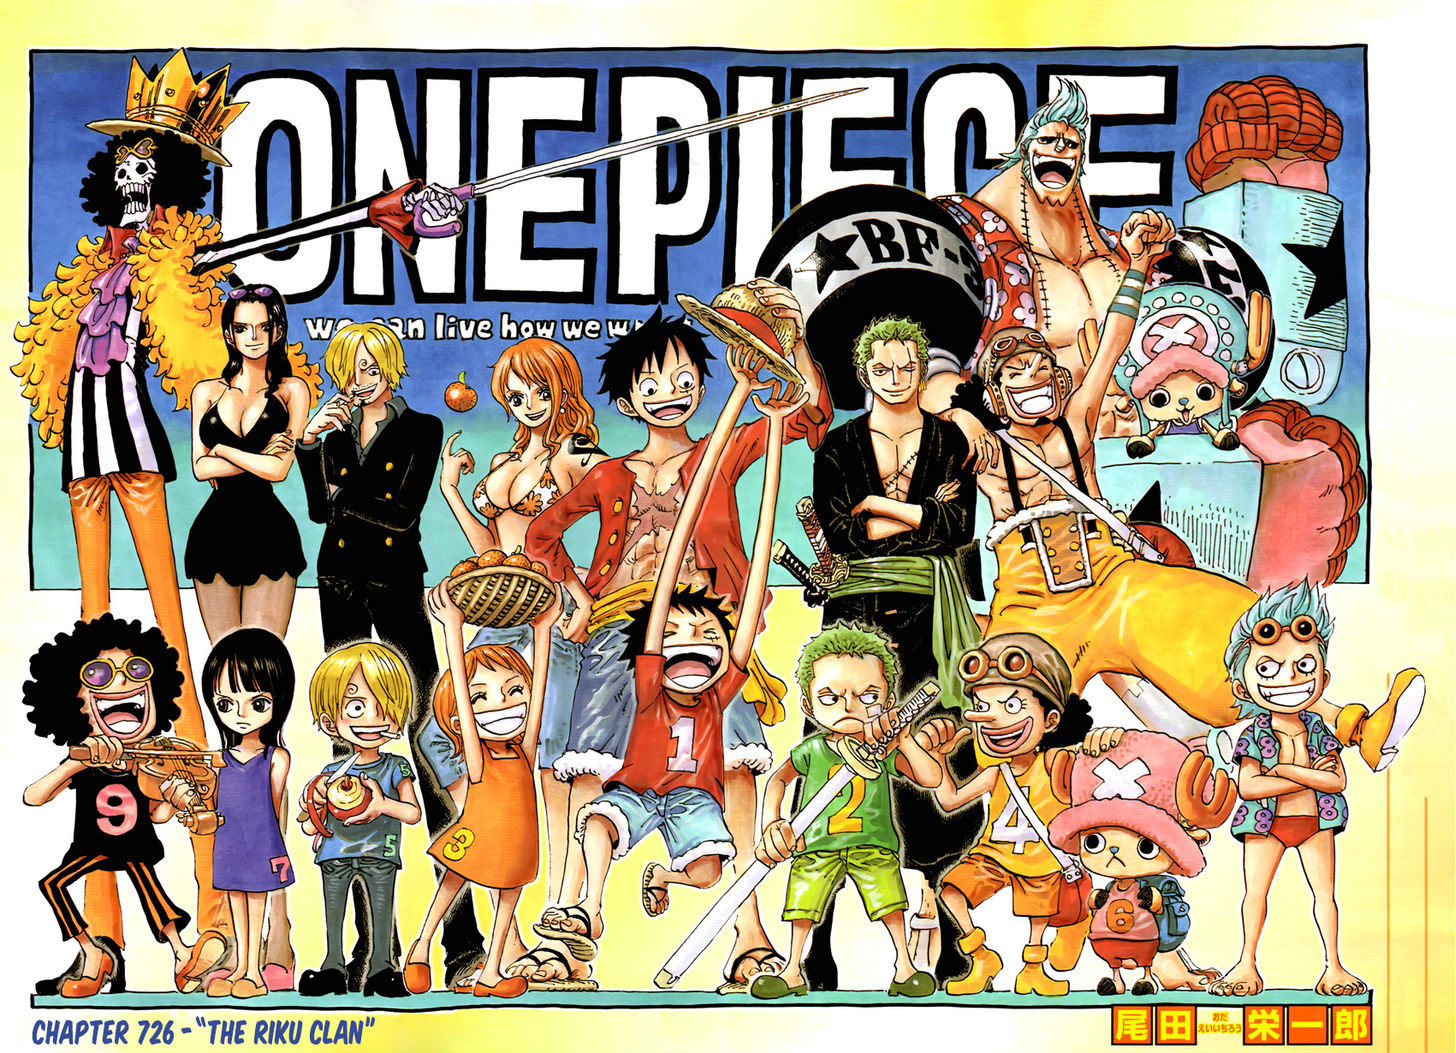 https://im.nineanime.com/comics/pic9/32/96/3075/OnePiece7260405.jpg Page 1